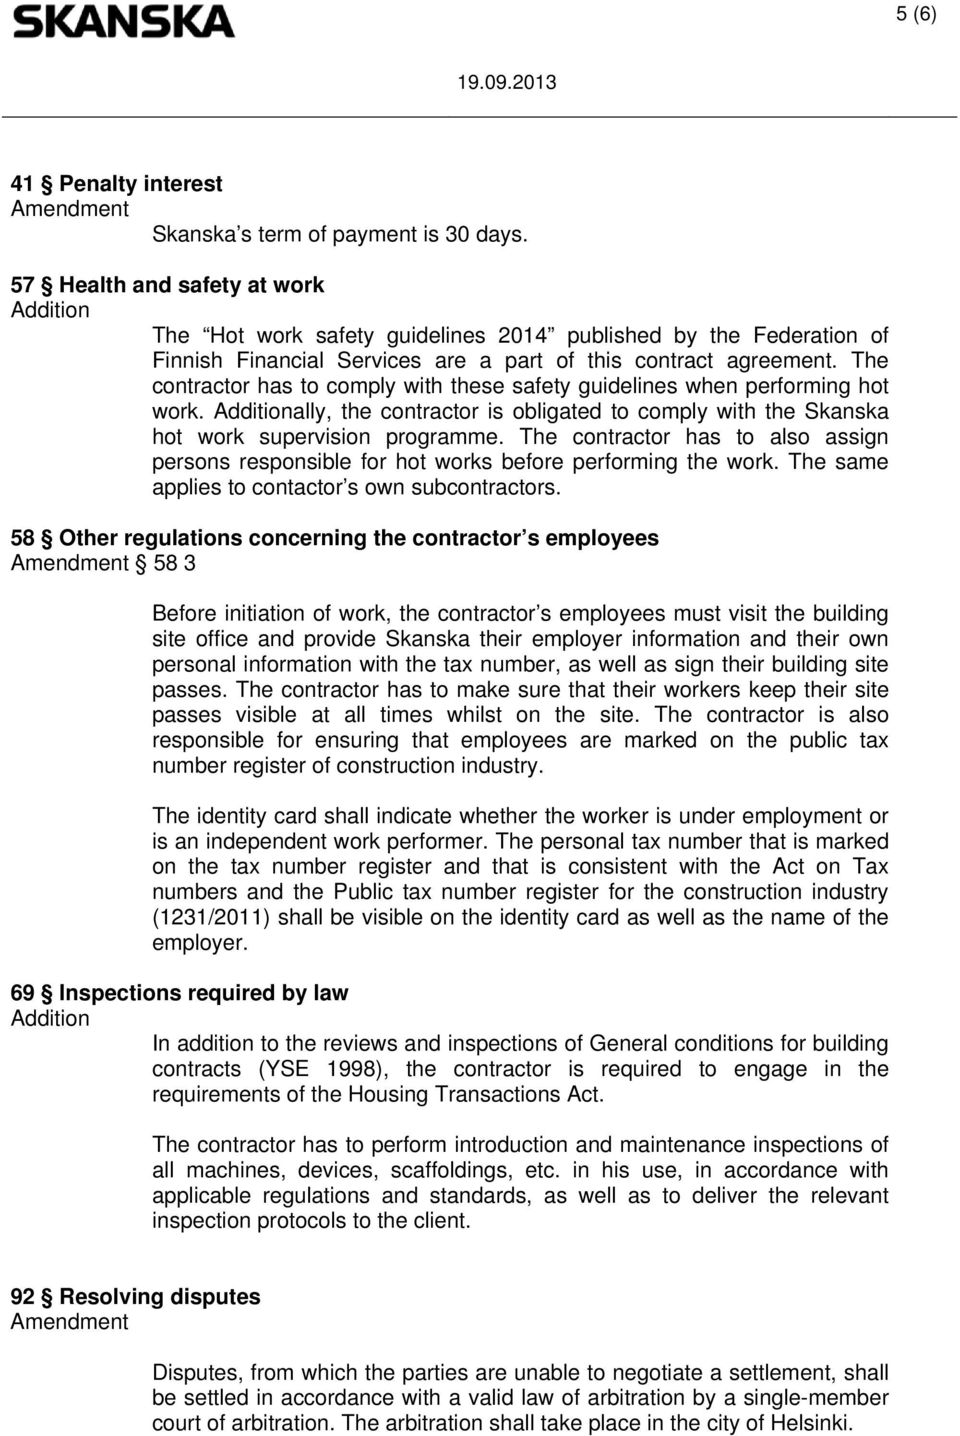 The contractor has to comply with these safety guidelines when performing hot work. ally, the contractor is obligated to comply with the Skanska hot work supervision programme.